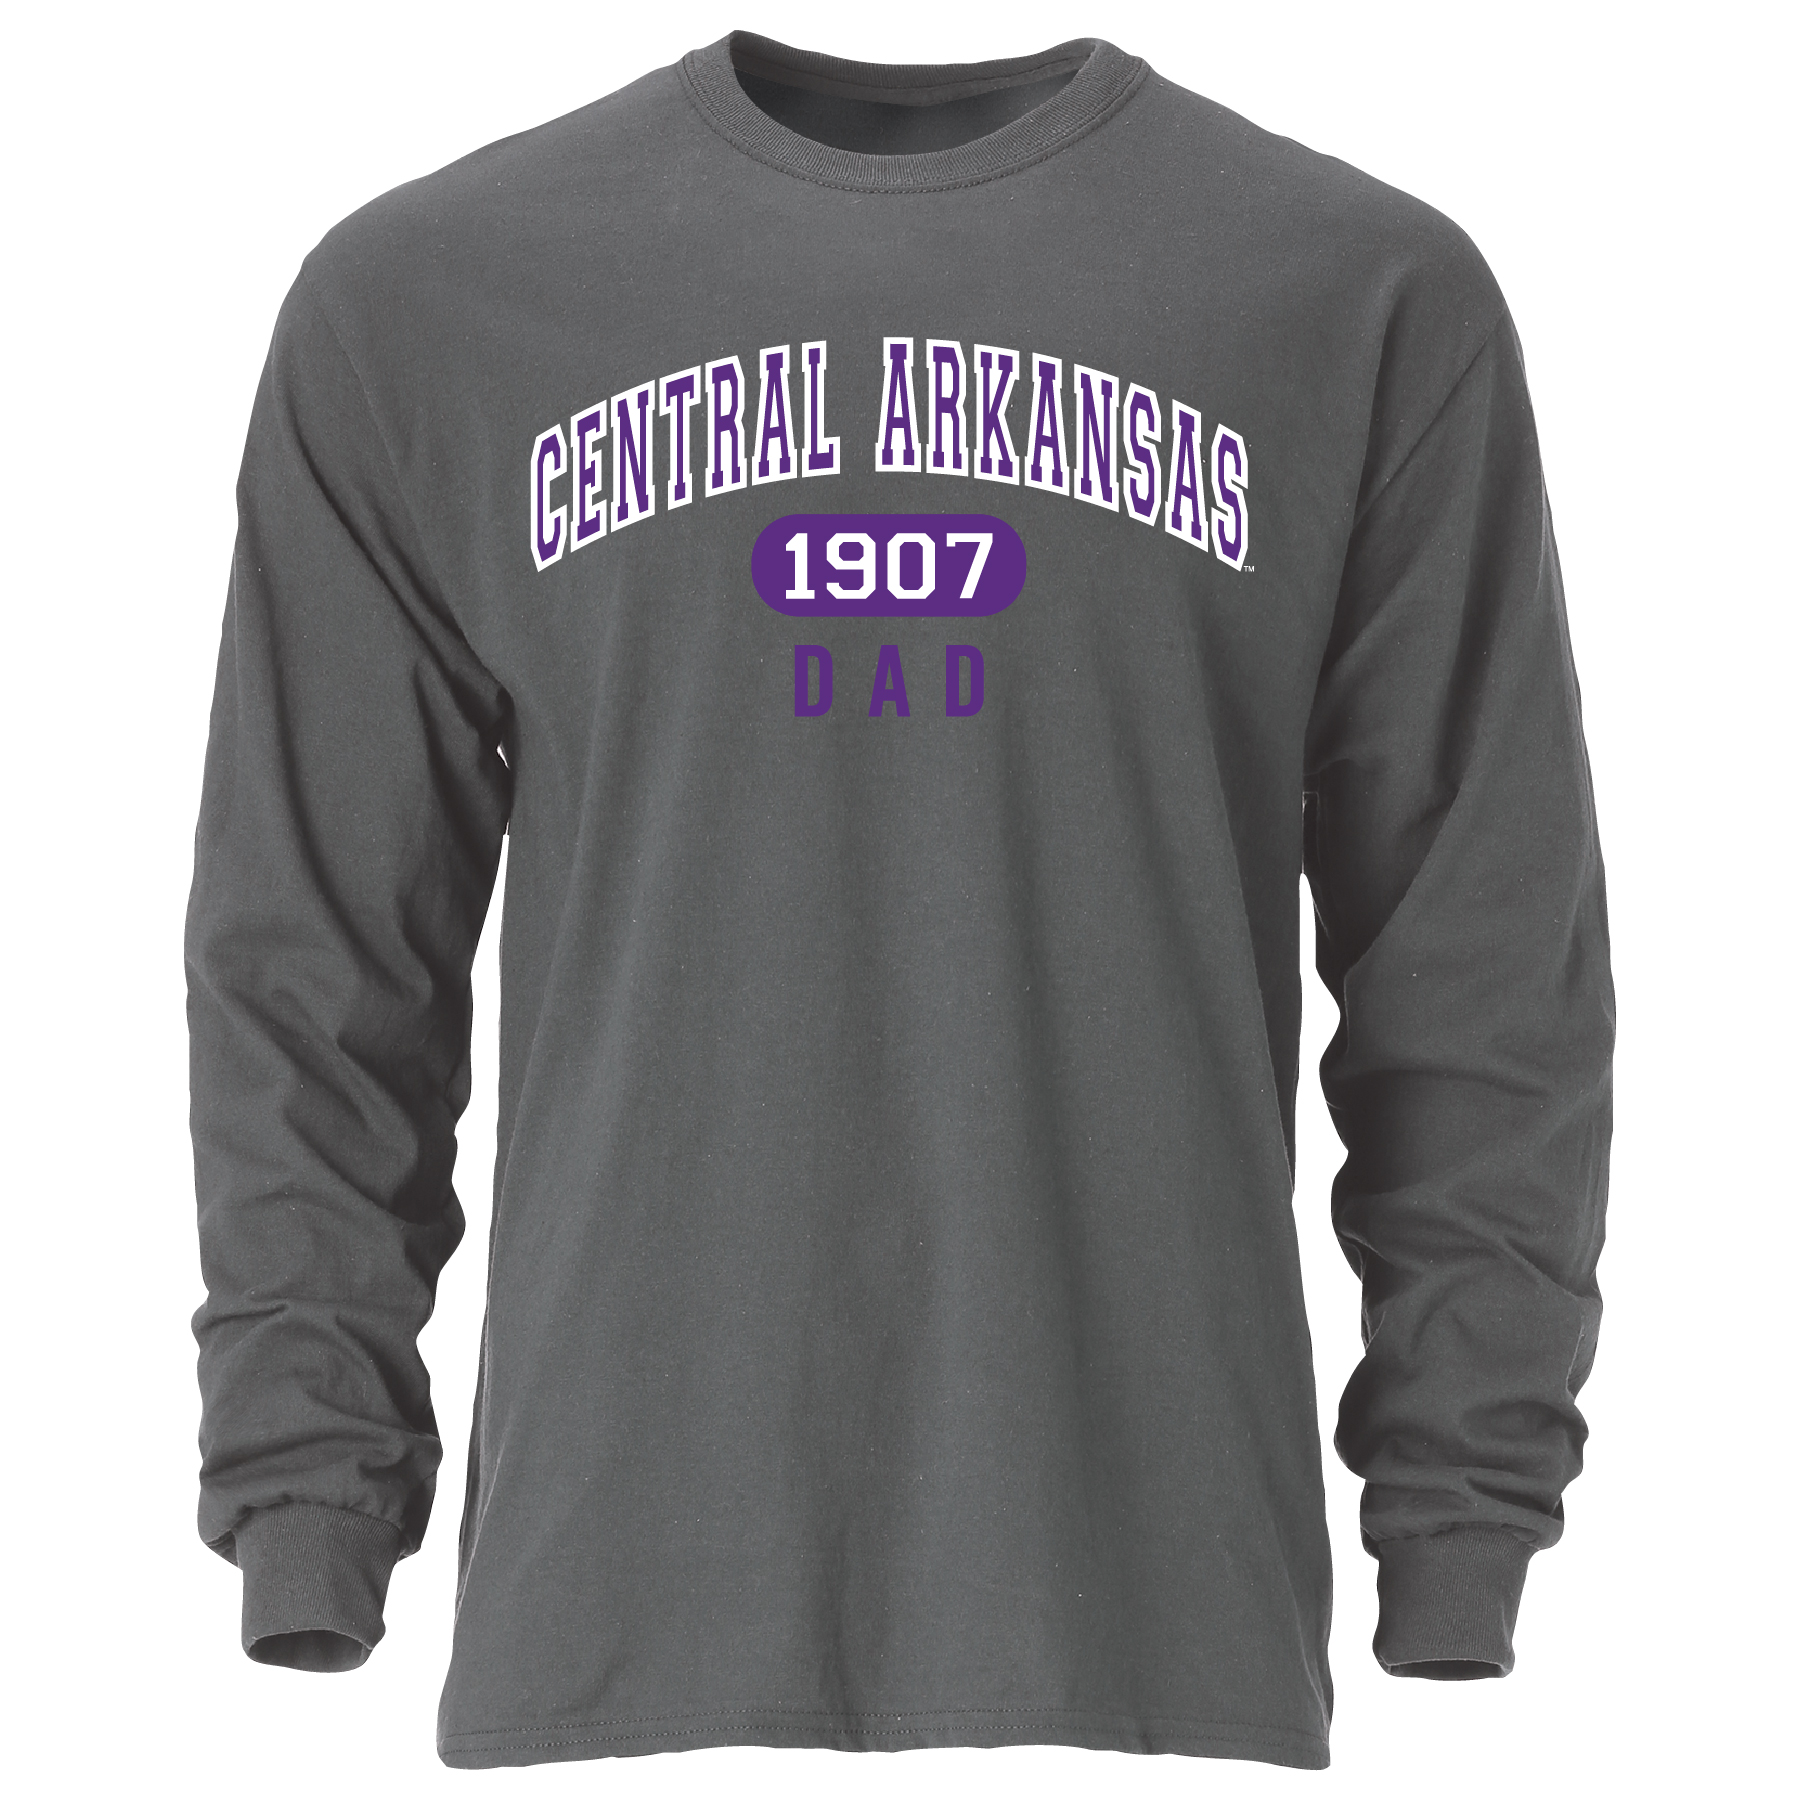 Central Arkansas Dad LS Tee